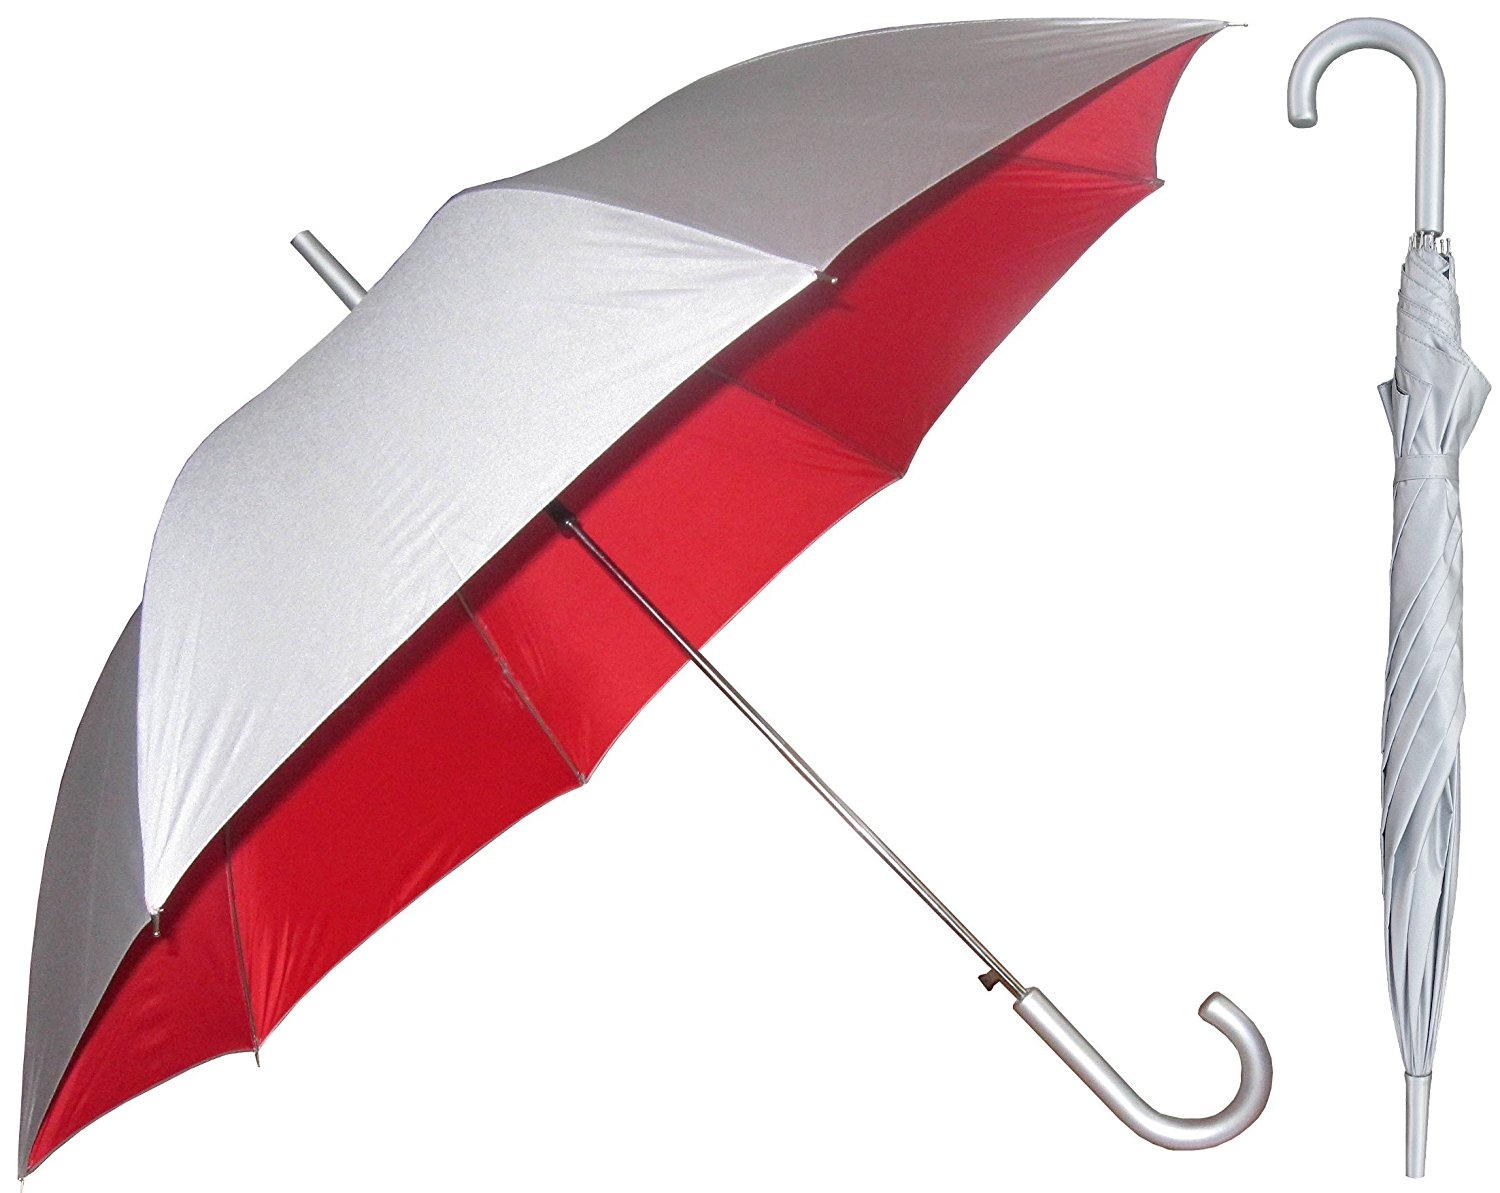 Silver Sunblock Umbrella with Red Lining - UV Protection Umbrella for Rain or Sun